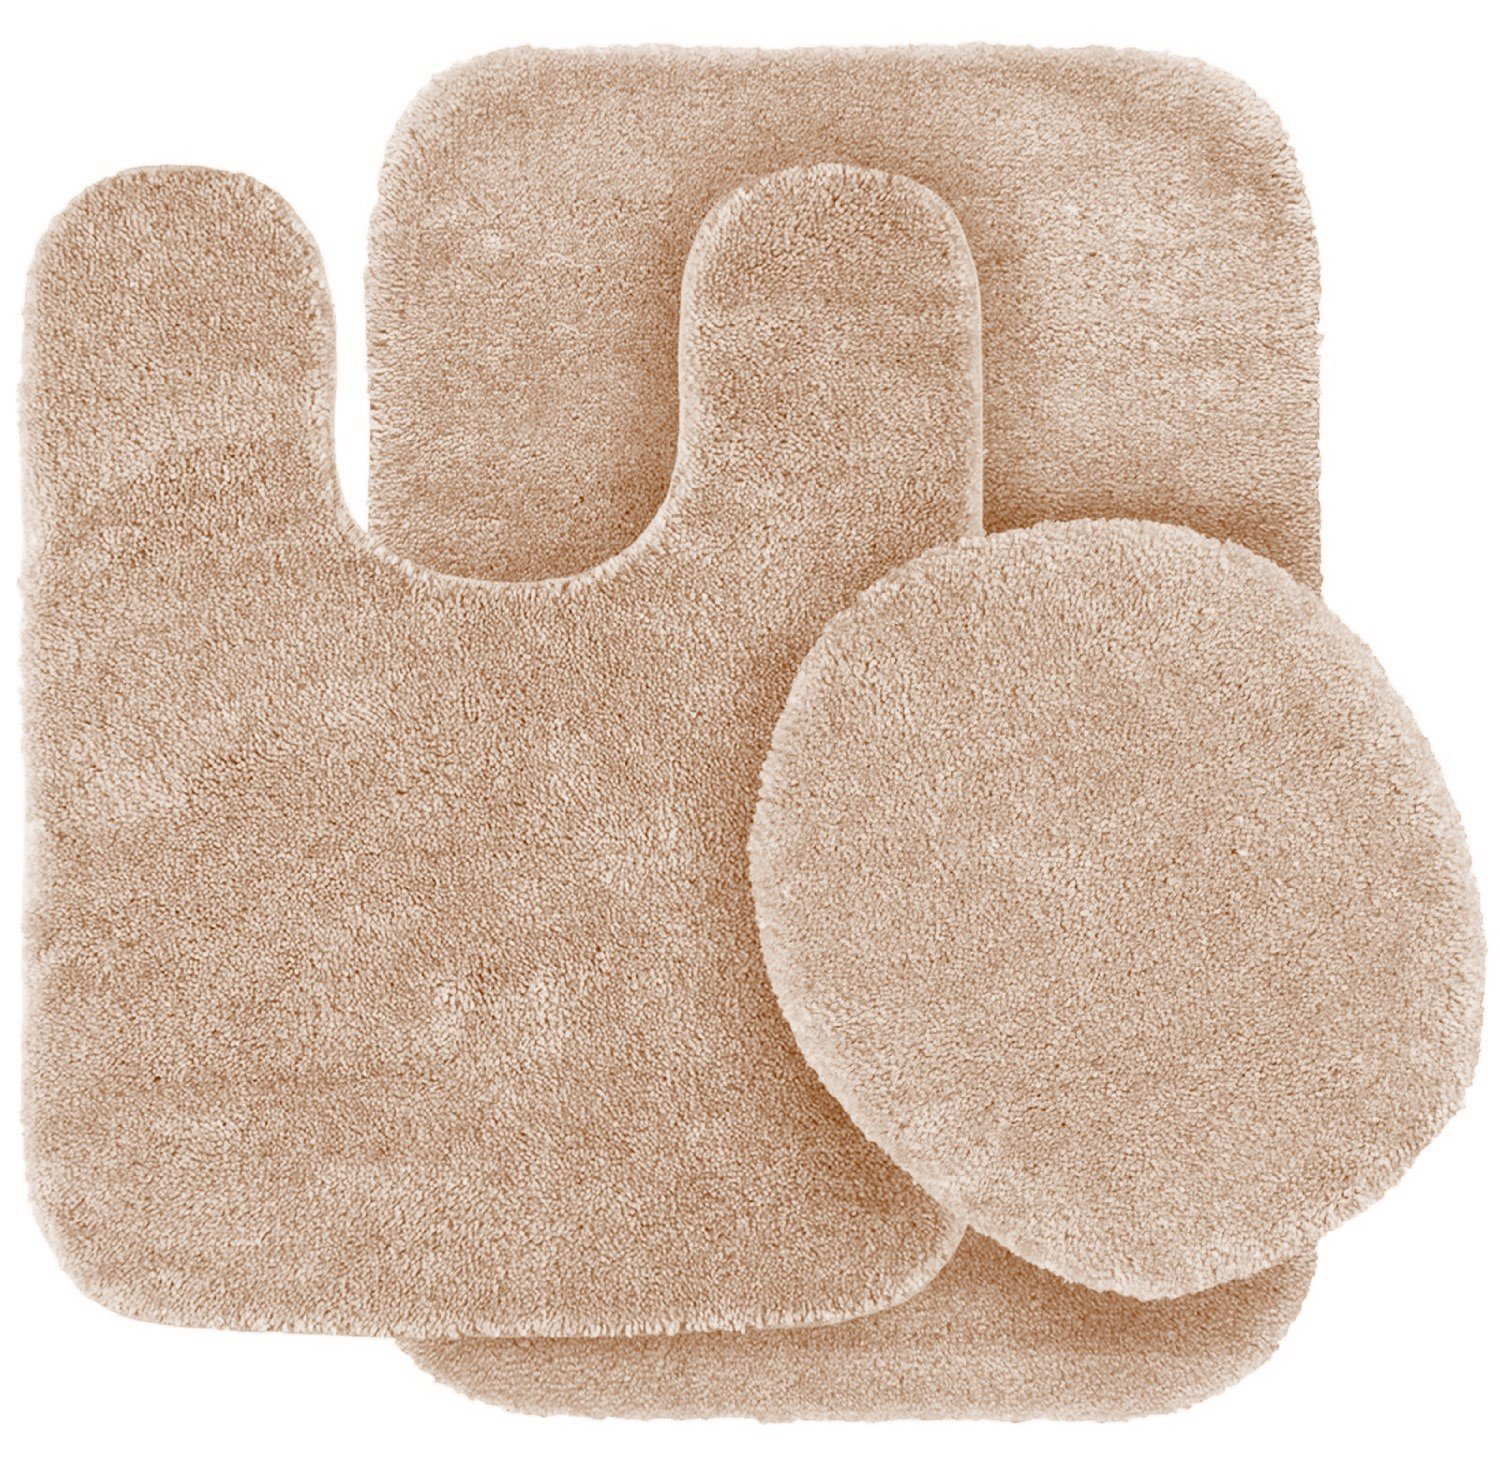 3 Pc TAUPE Bathroom Set Bath Mat RUG, Contour, and Toilet Lid Cover, with Rubber Backing #6